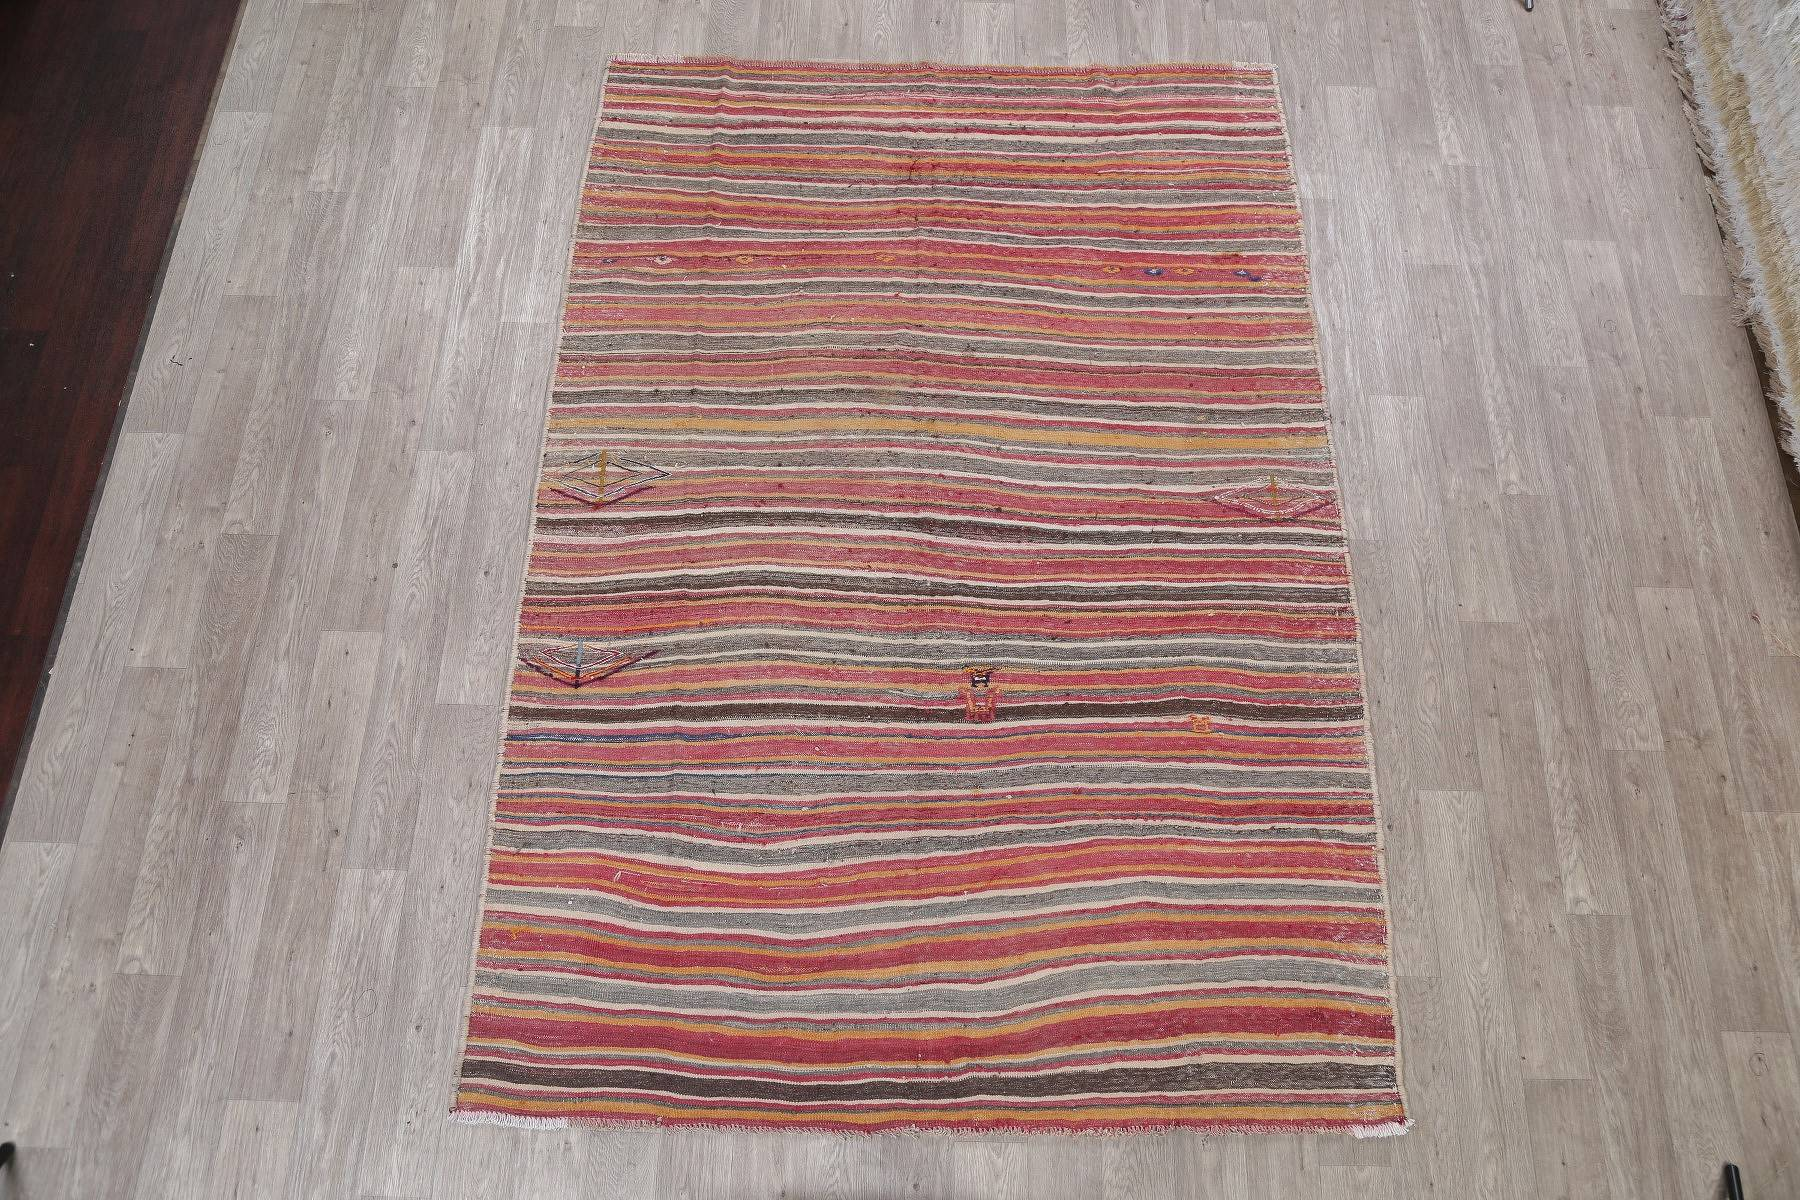 Stripe Semi-Antique Kilim Persian Hand-Woven 6x9 Wool Area Rug